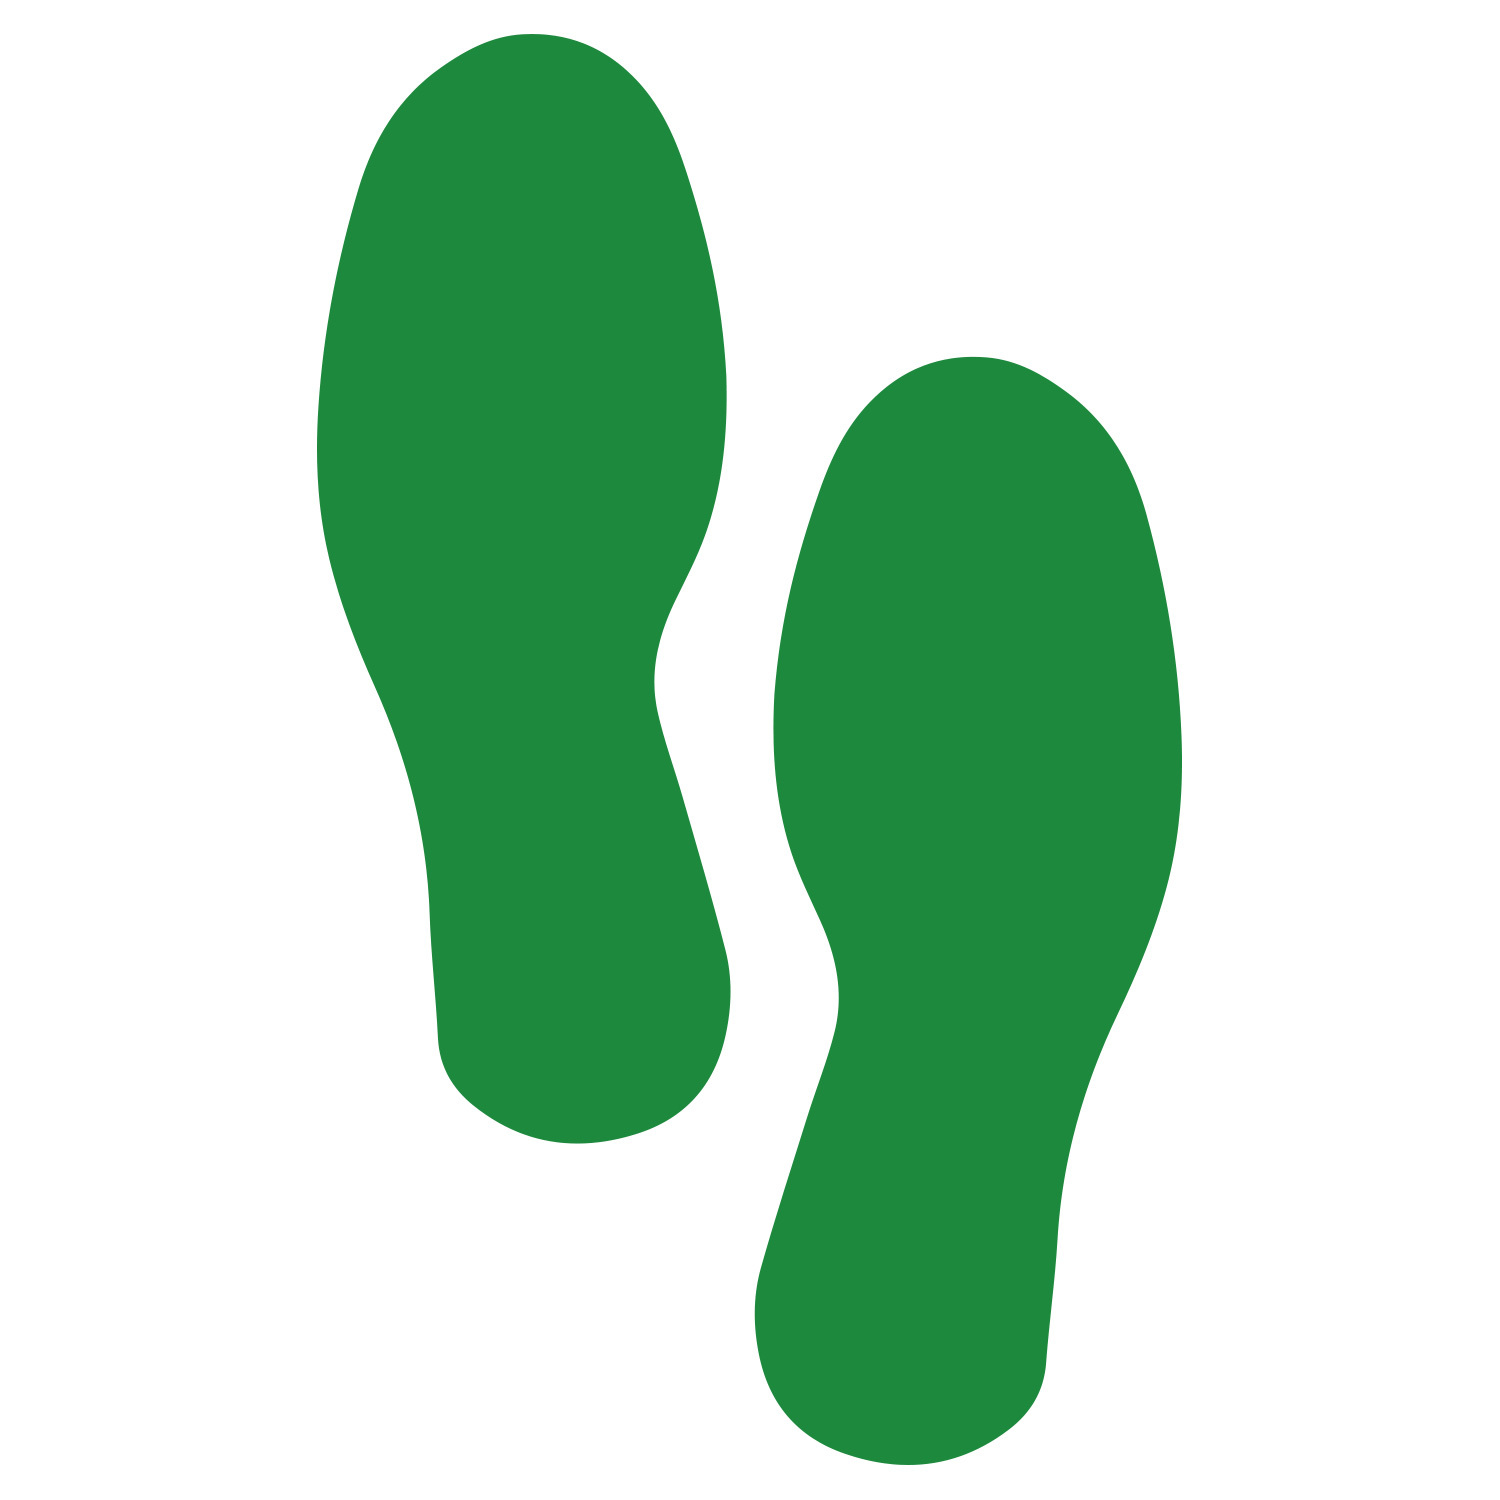 Primary image for LiteMark Medium Size Green Durable Footprint Decals  - Pack of 12 (6 Pairs)